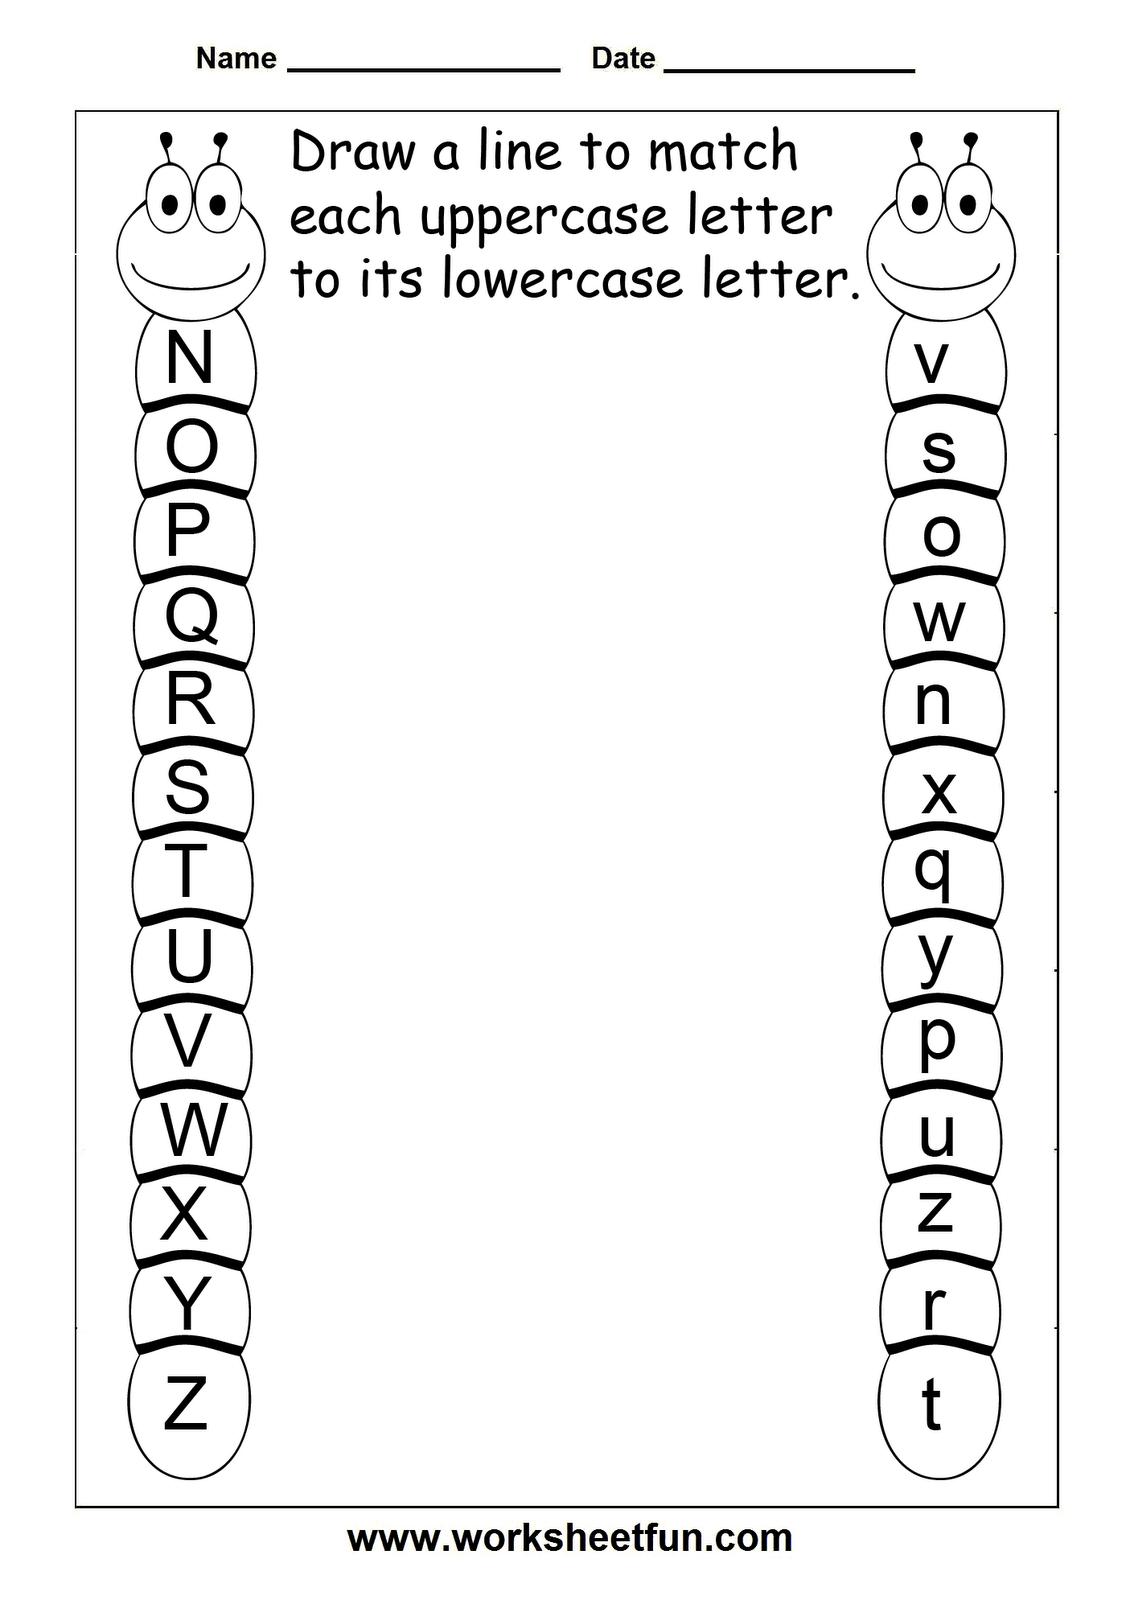 worksheet Abc Worksheets For Pre-k worksheetfun free printable worksheets 1st grade pinterest worksheets